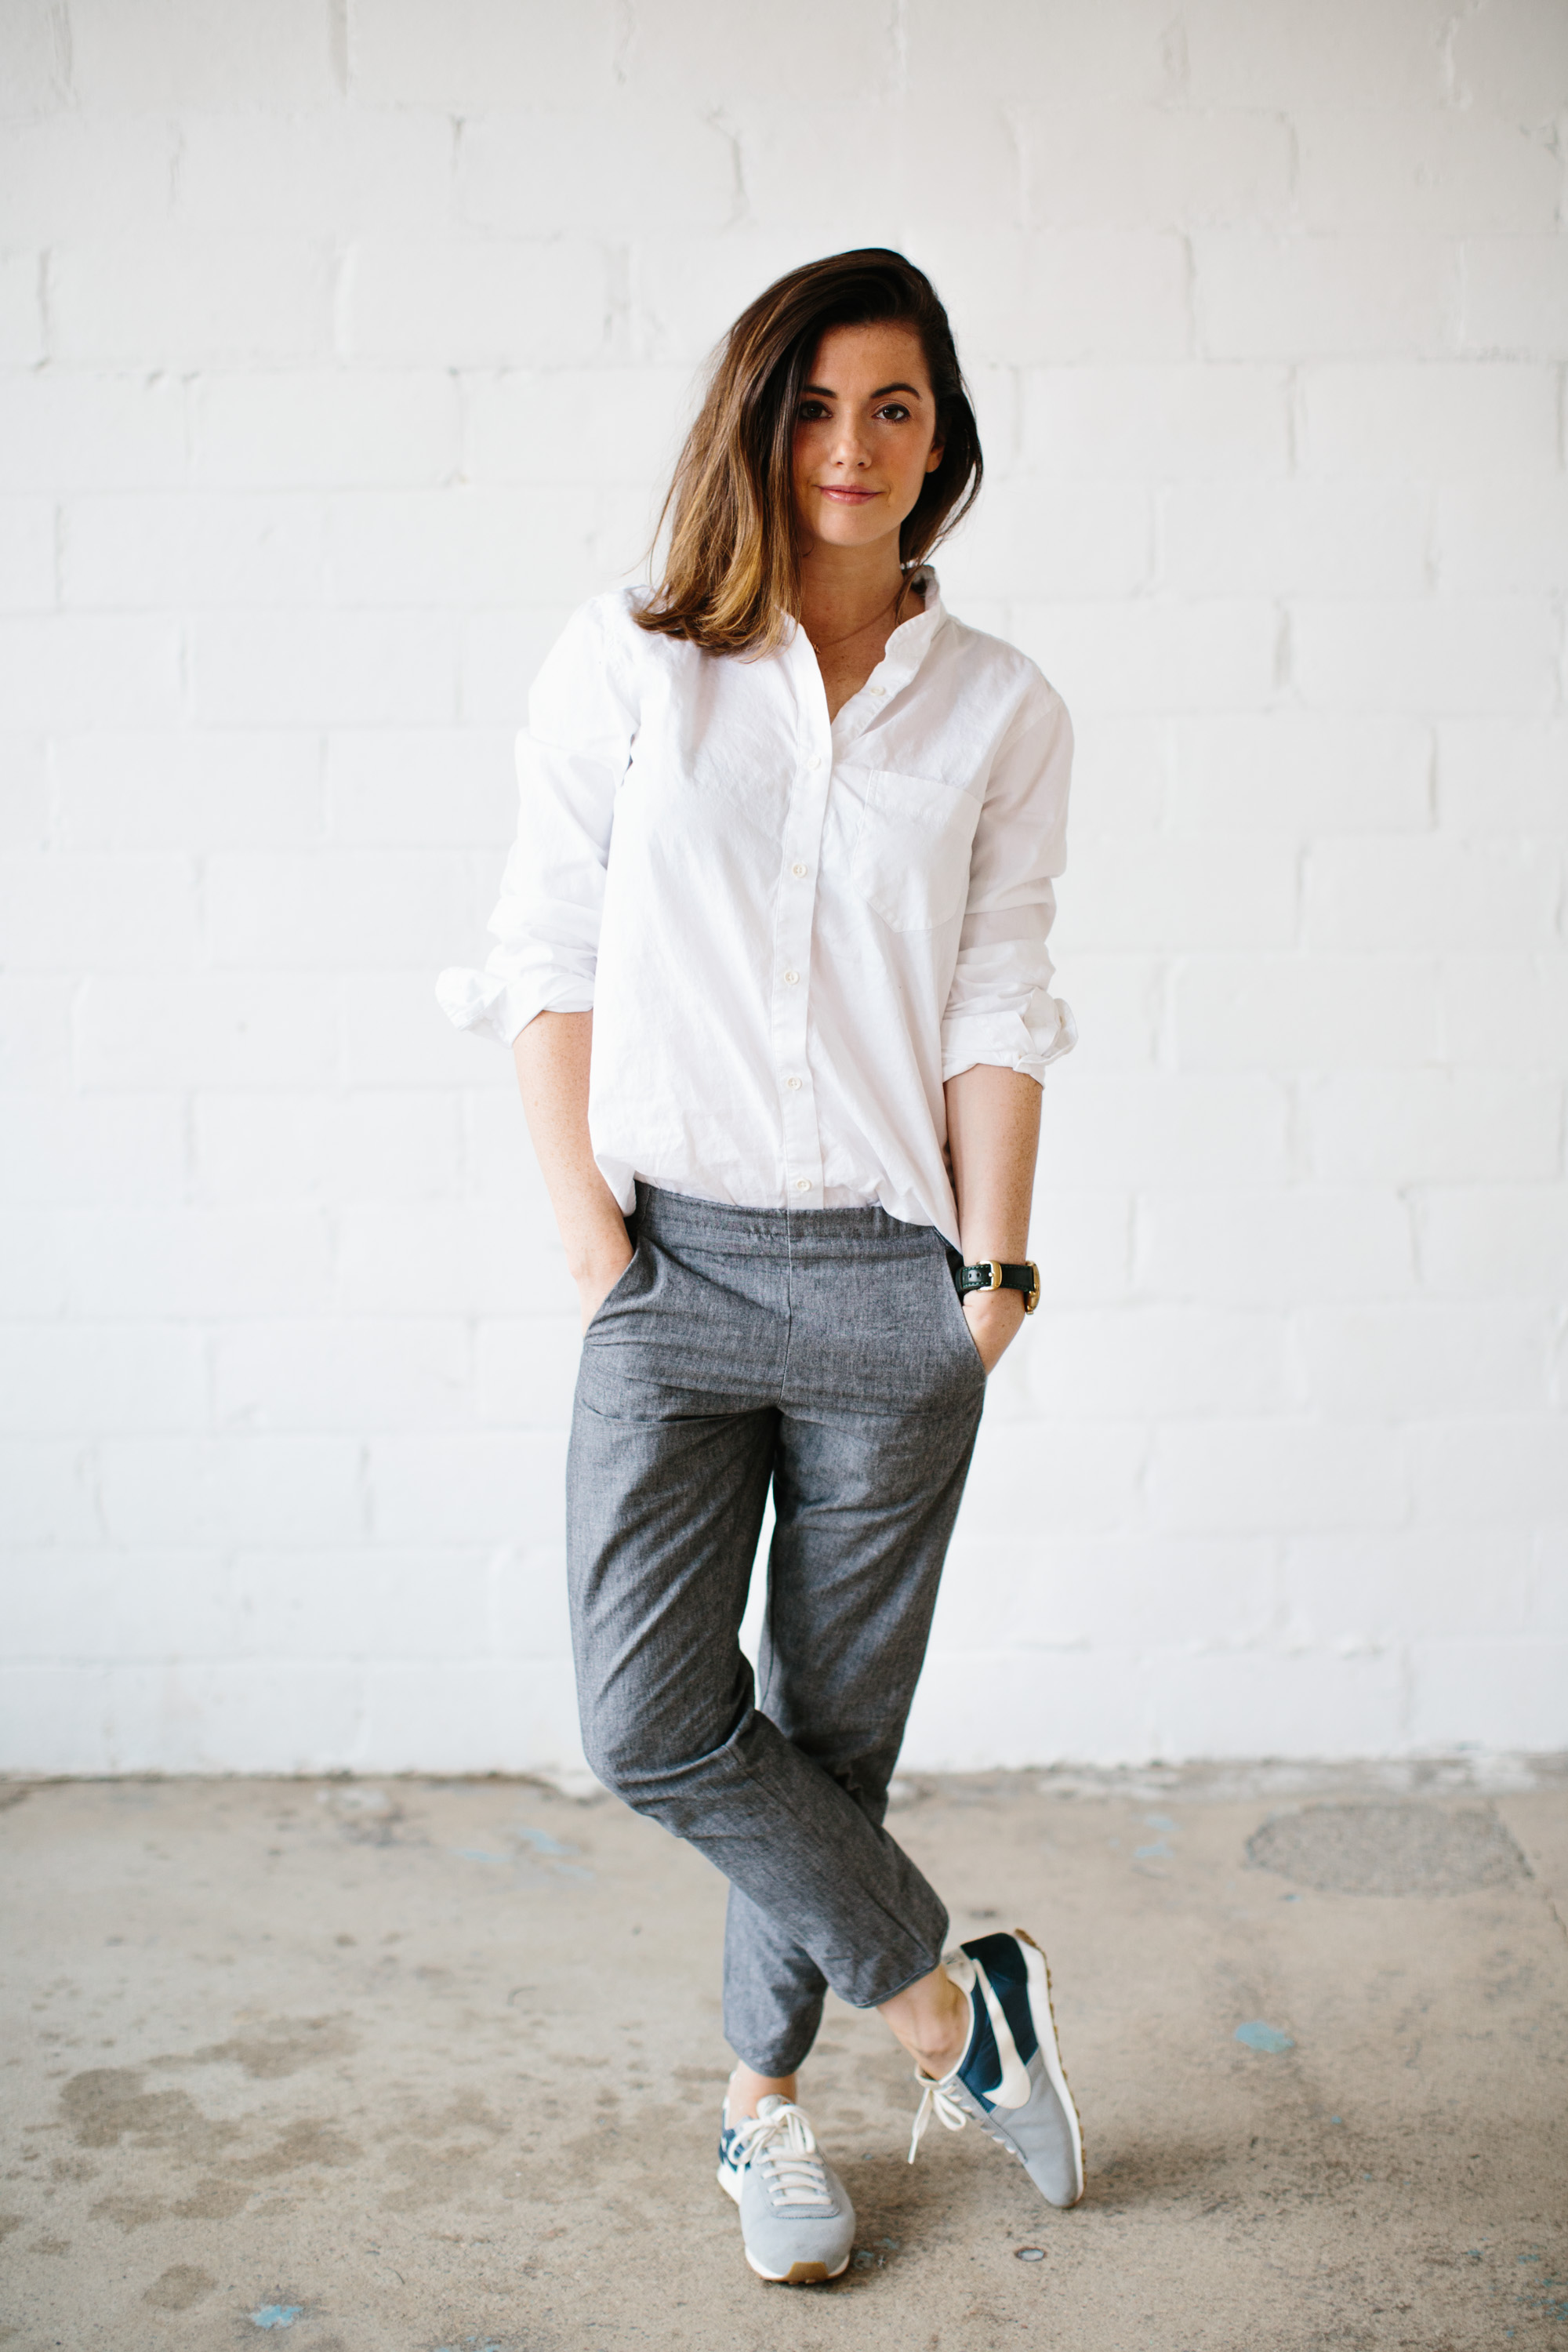 Original 20 Work Outfits {Photos} - Decoding Women Business Casual